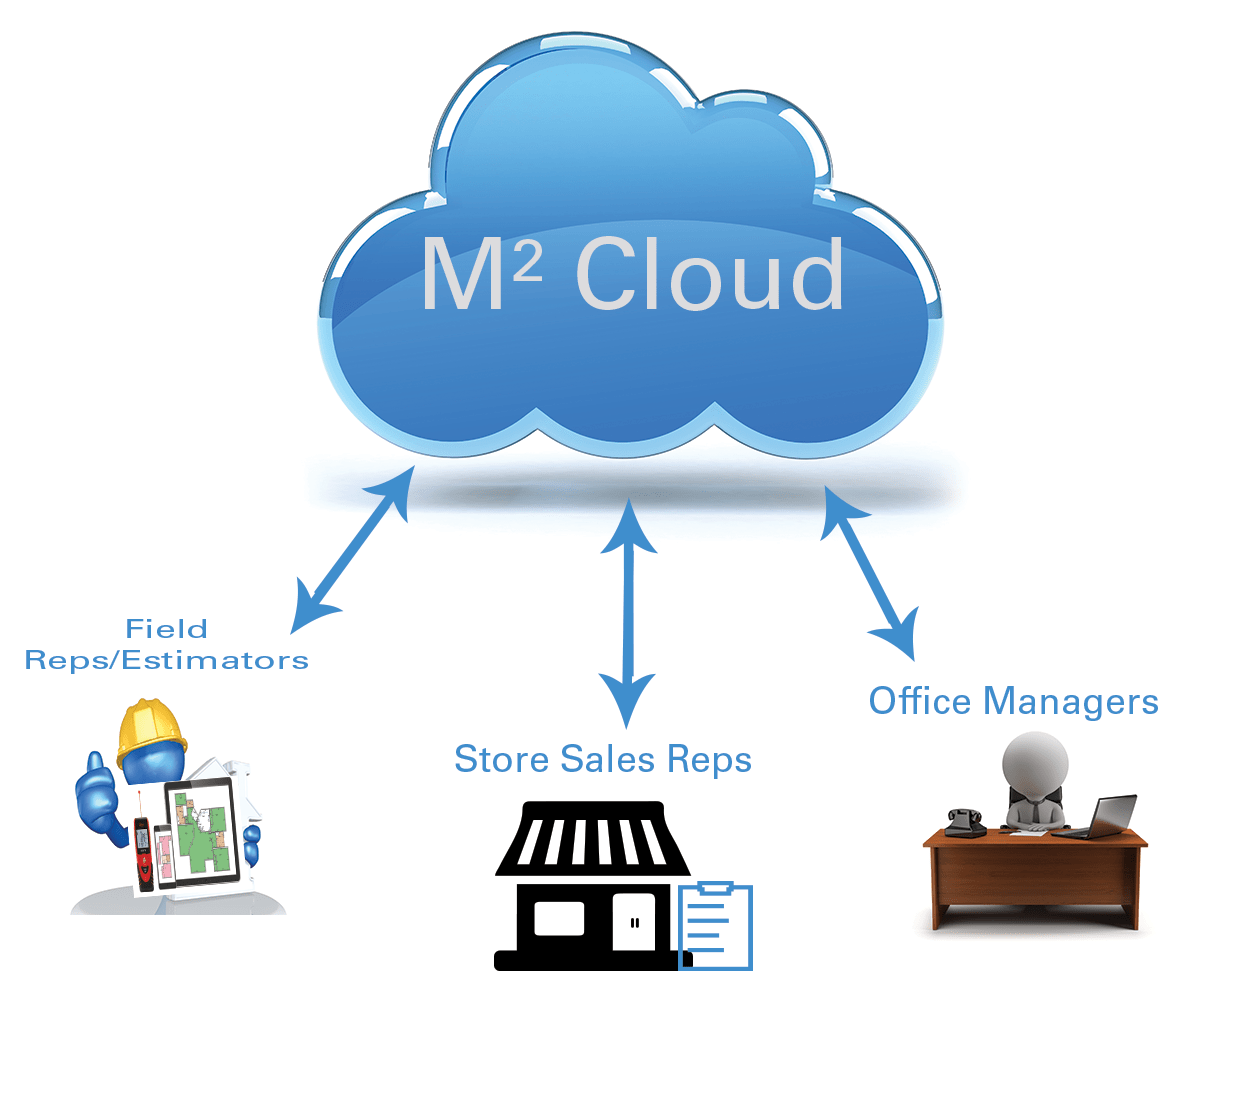 MS 2017 Transition: Managing Licenses In The Cloud